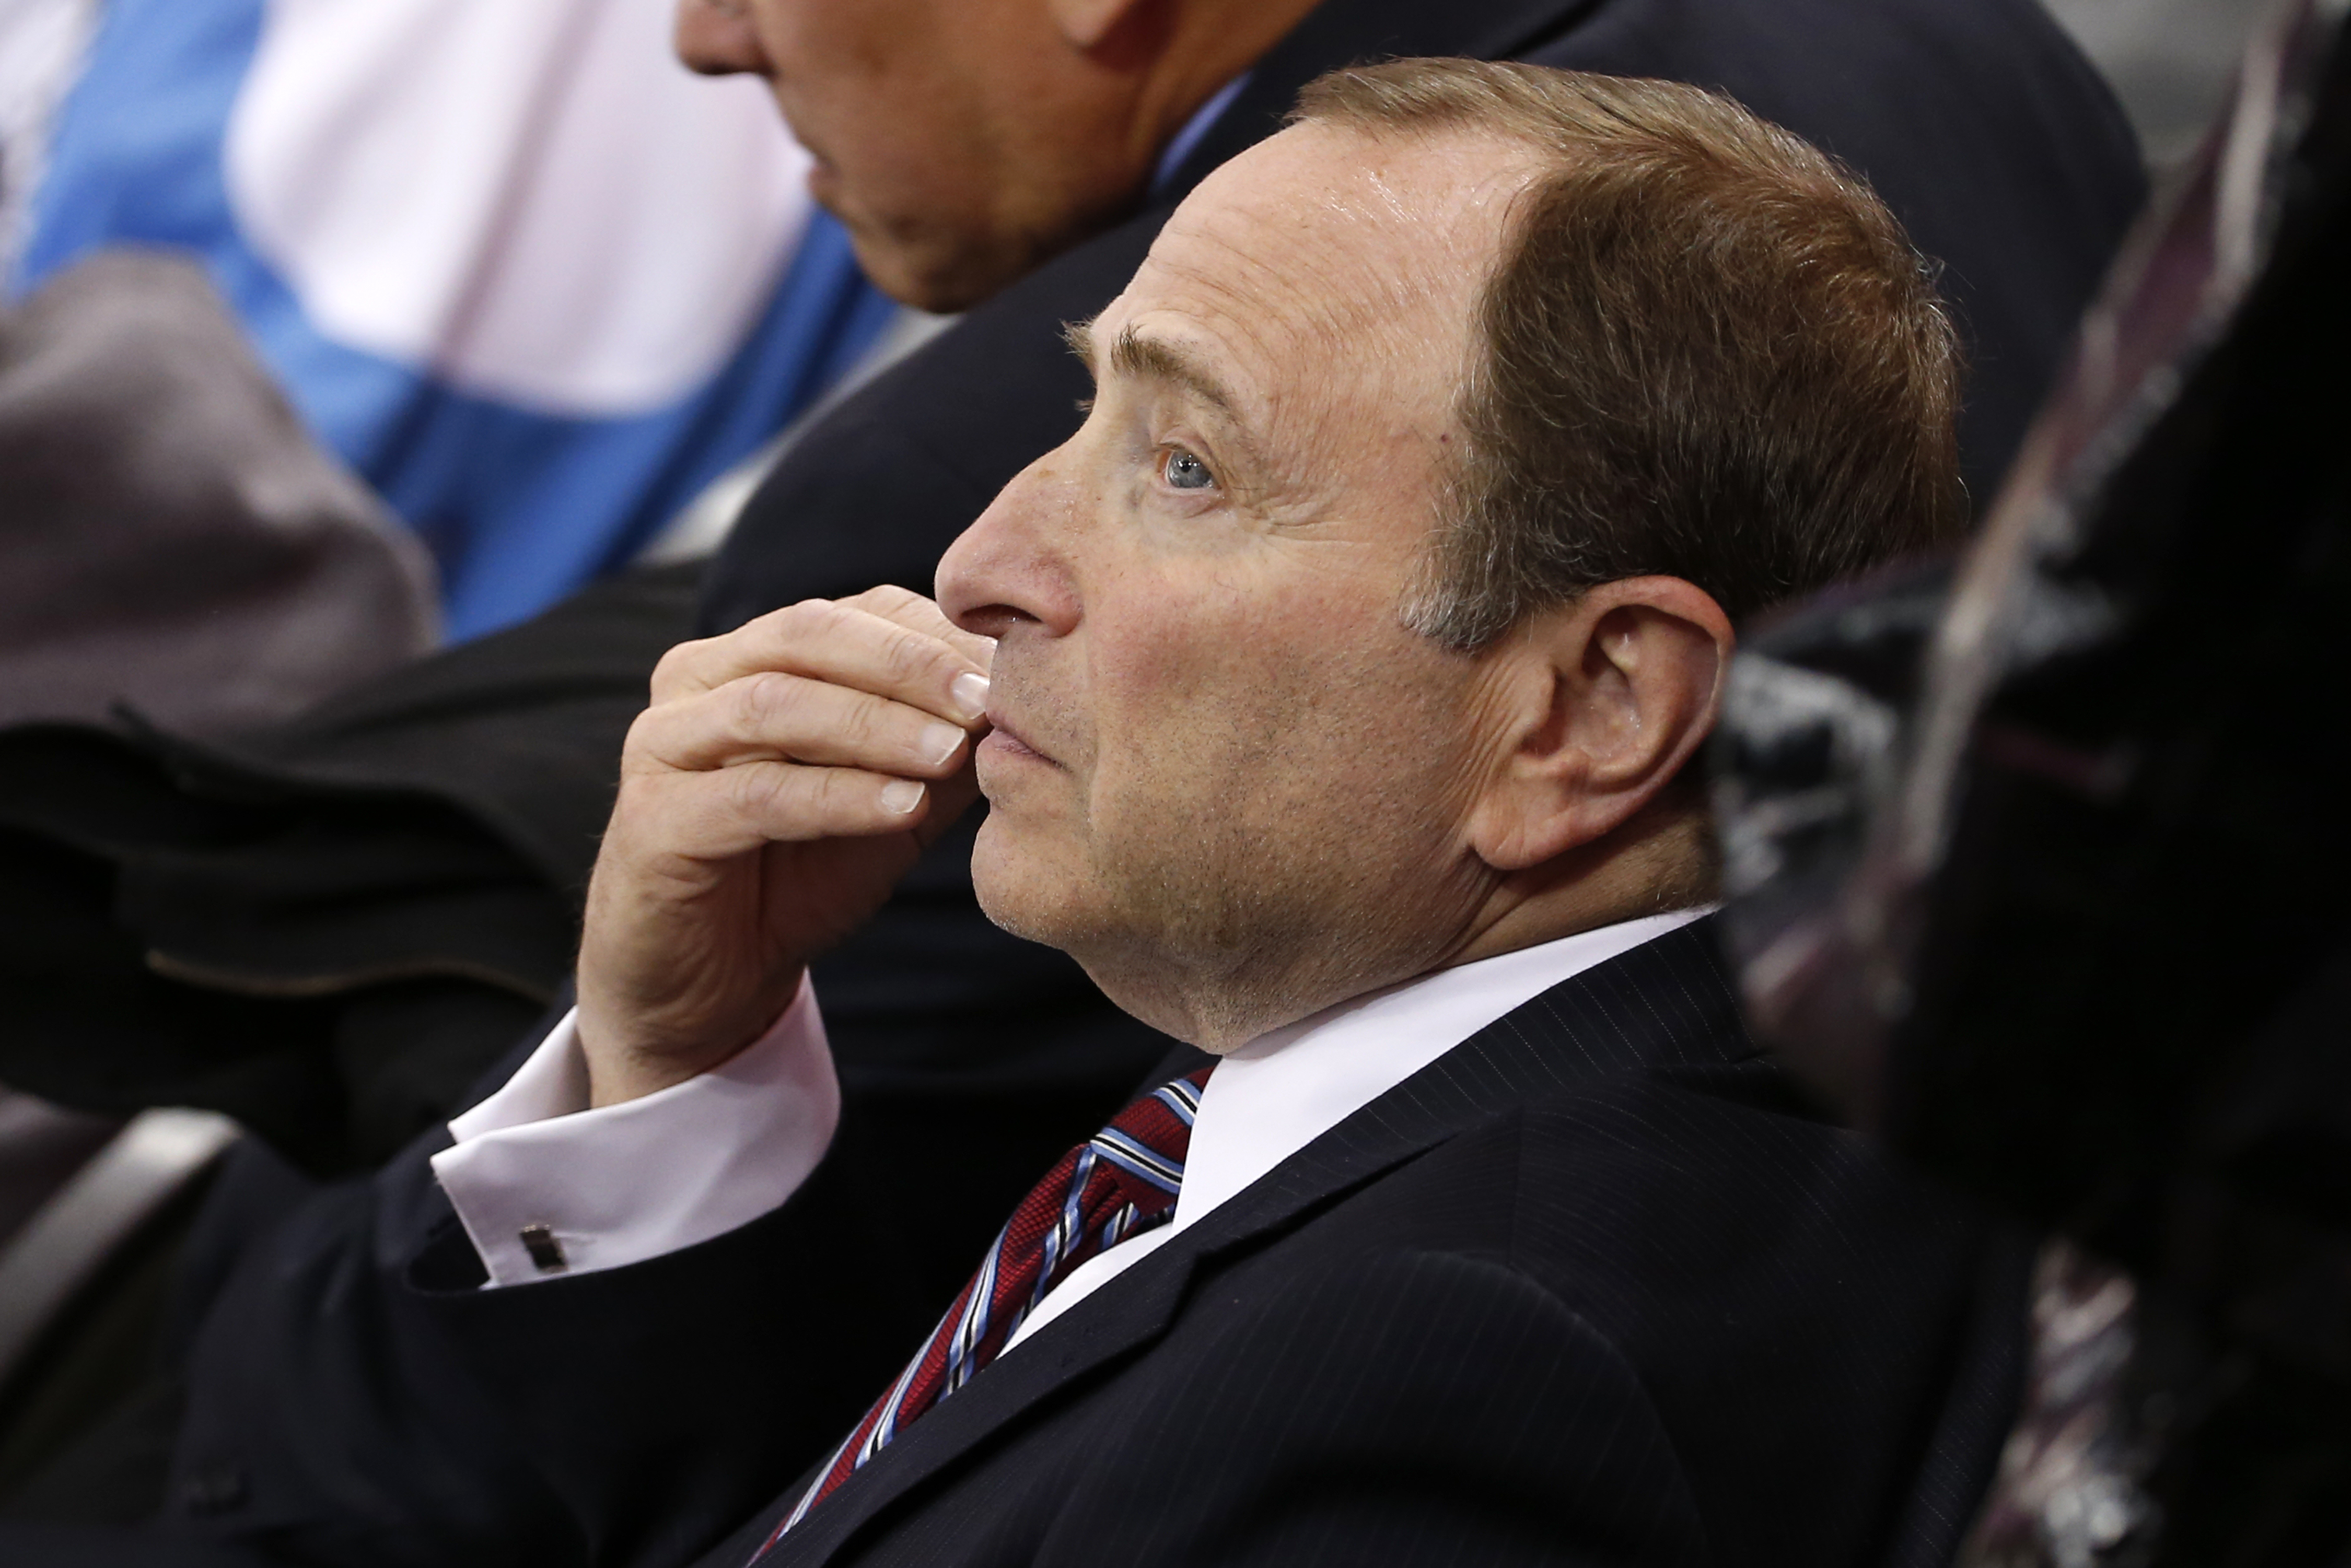 NHL commissioner Gary Bettman watches the first period of a first-round NHL playoff hockey game between the Pittsburgh Penguins and the New York Rangers in Pittsburgh on Wednesday, April 22, 2015.(AP Photo/Gene J. Puskar)